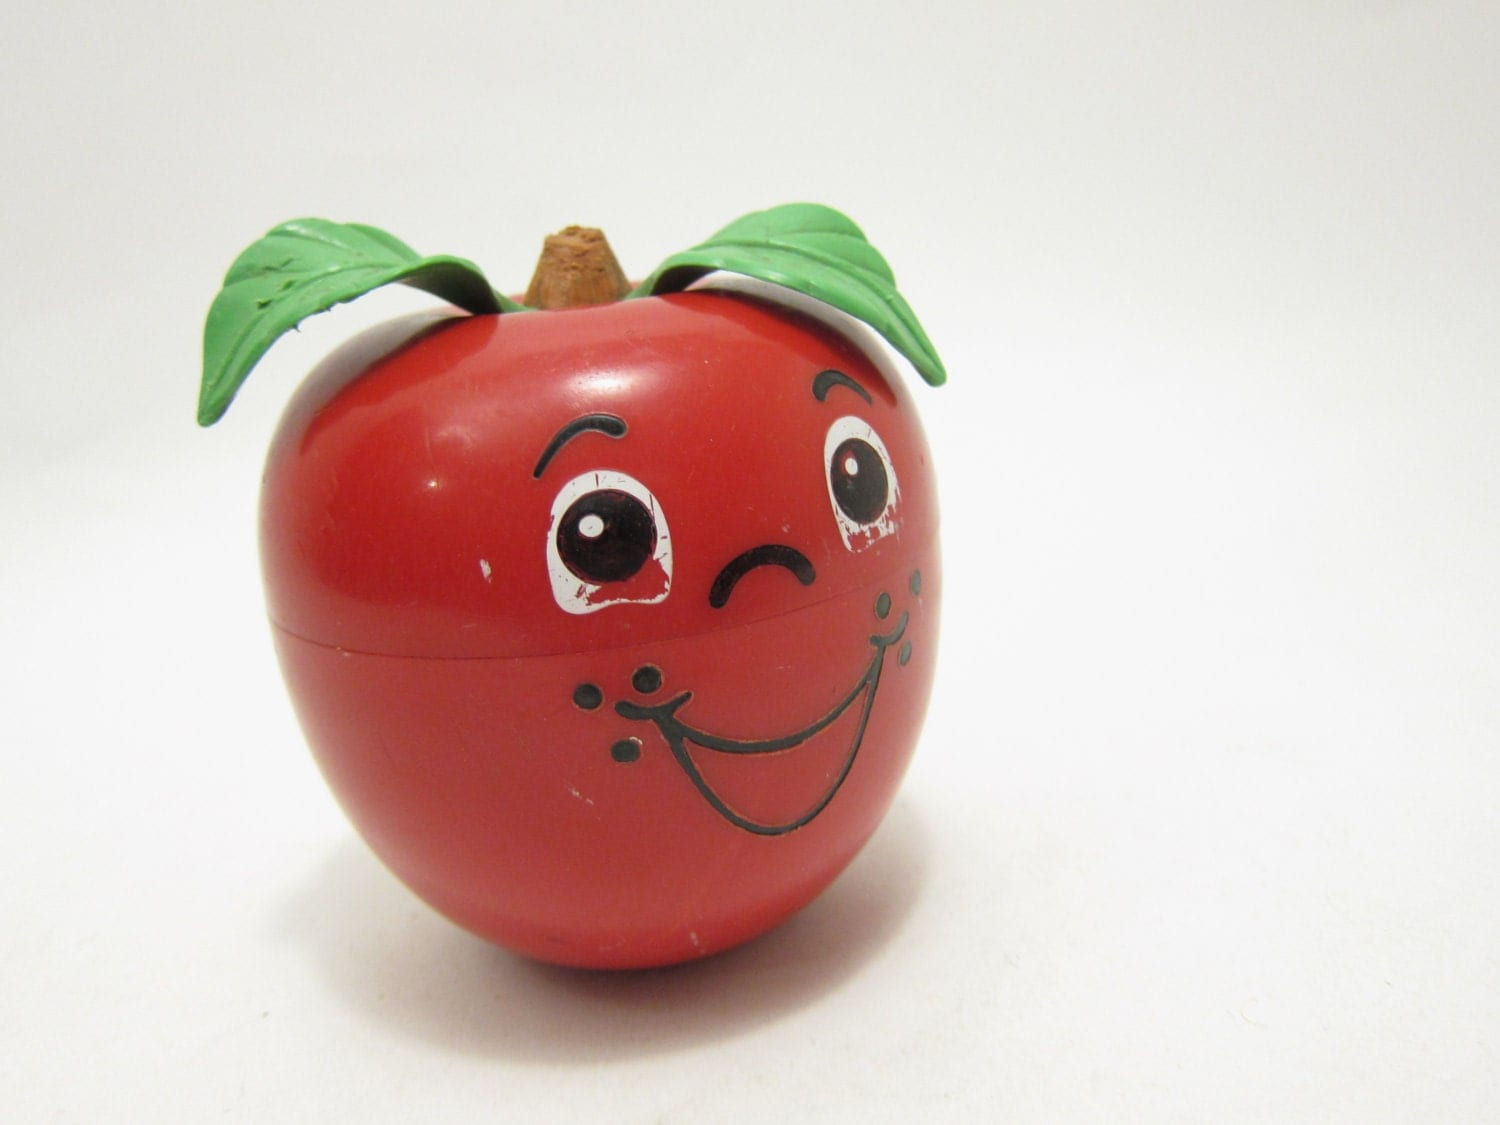 Old Toys From The 70s : Fisher price happy apple vintage baby s toy bells